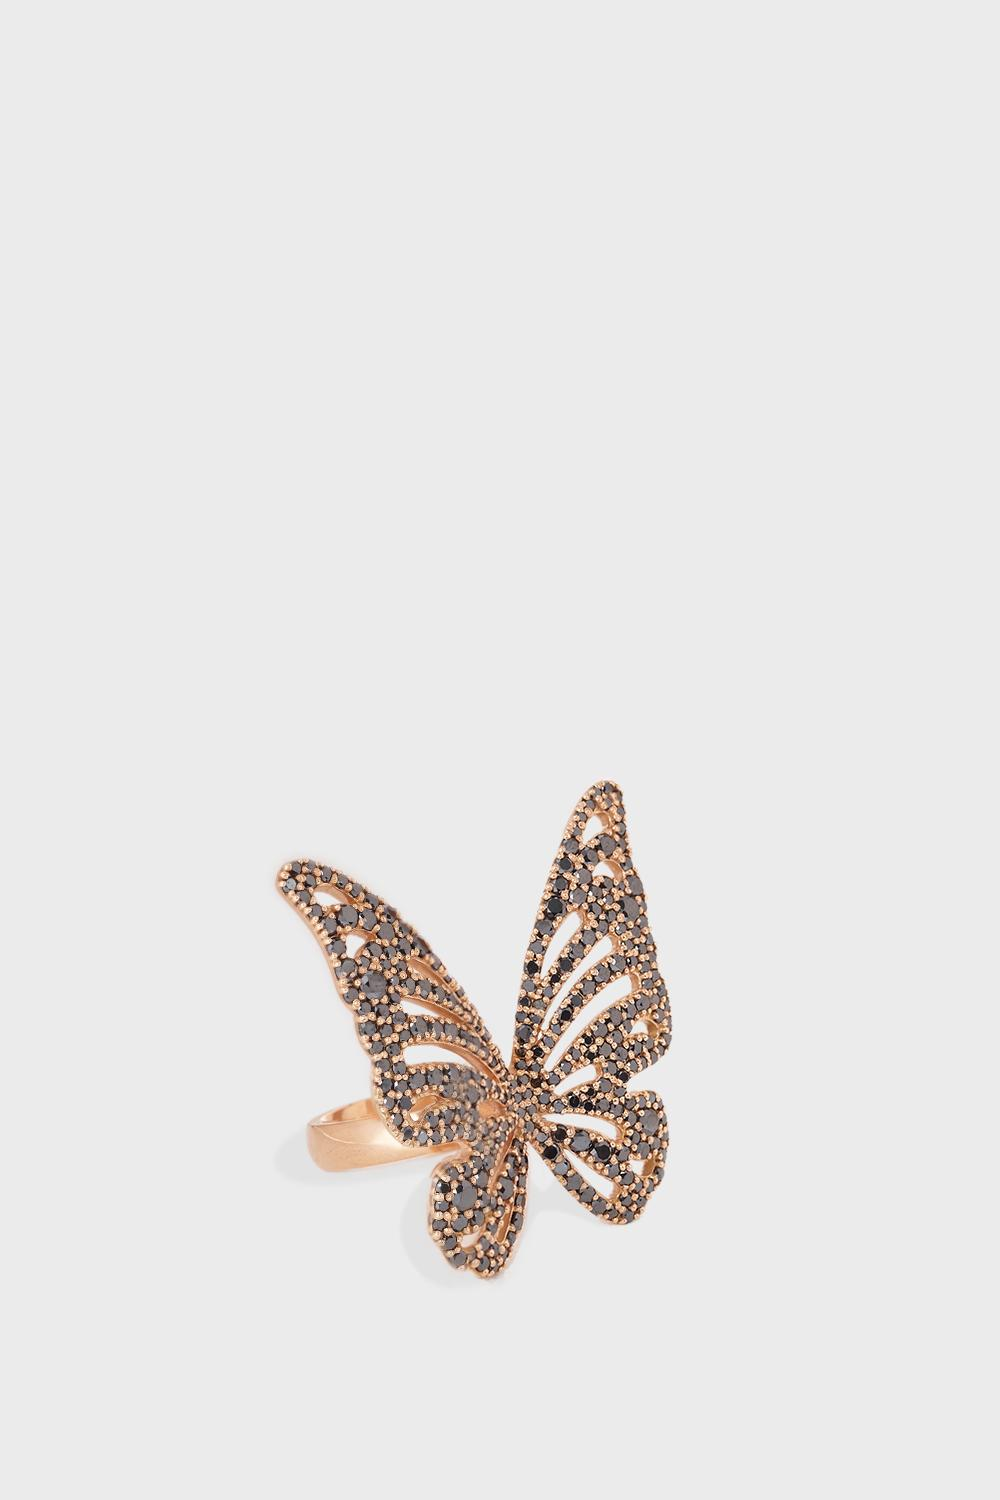 LIMELITE FINE JEWELLERY Butterfly Diamond Embellished Ring